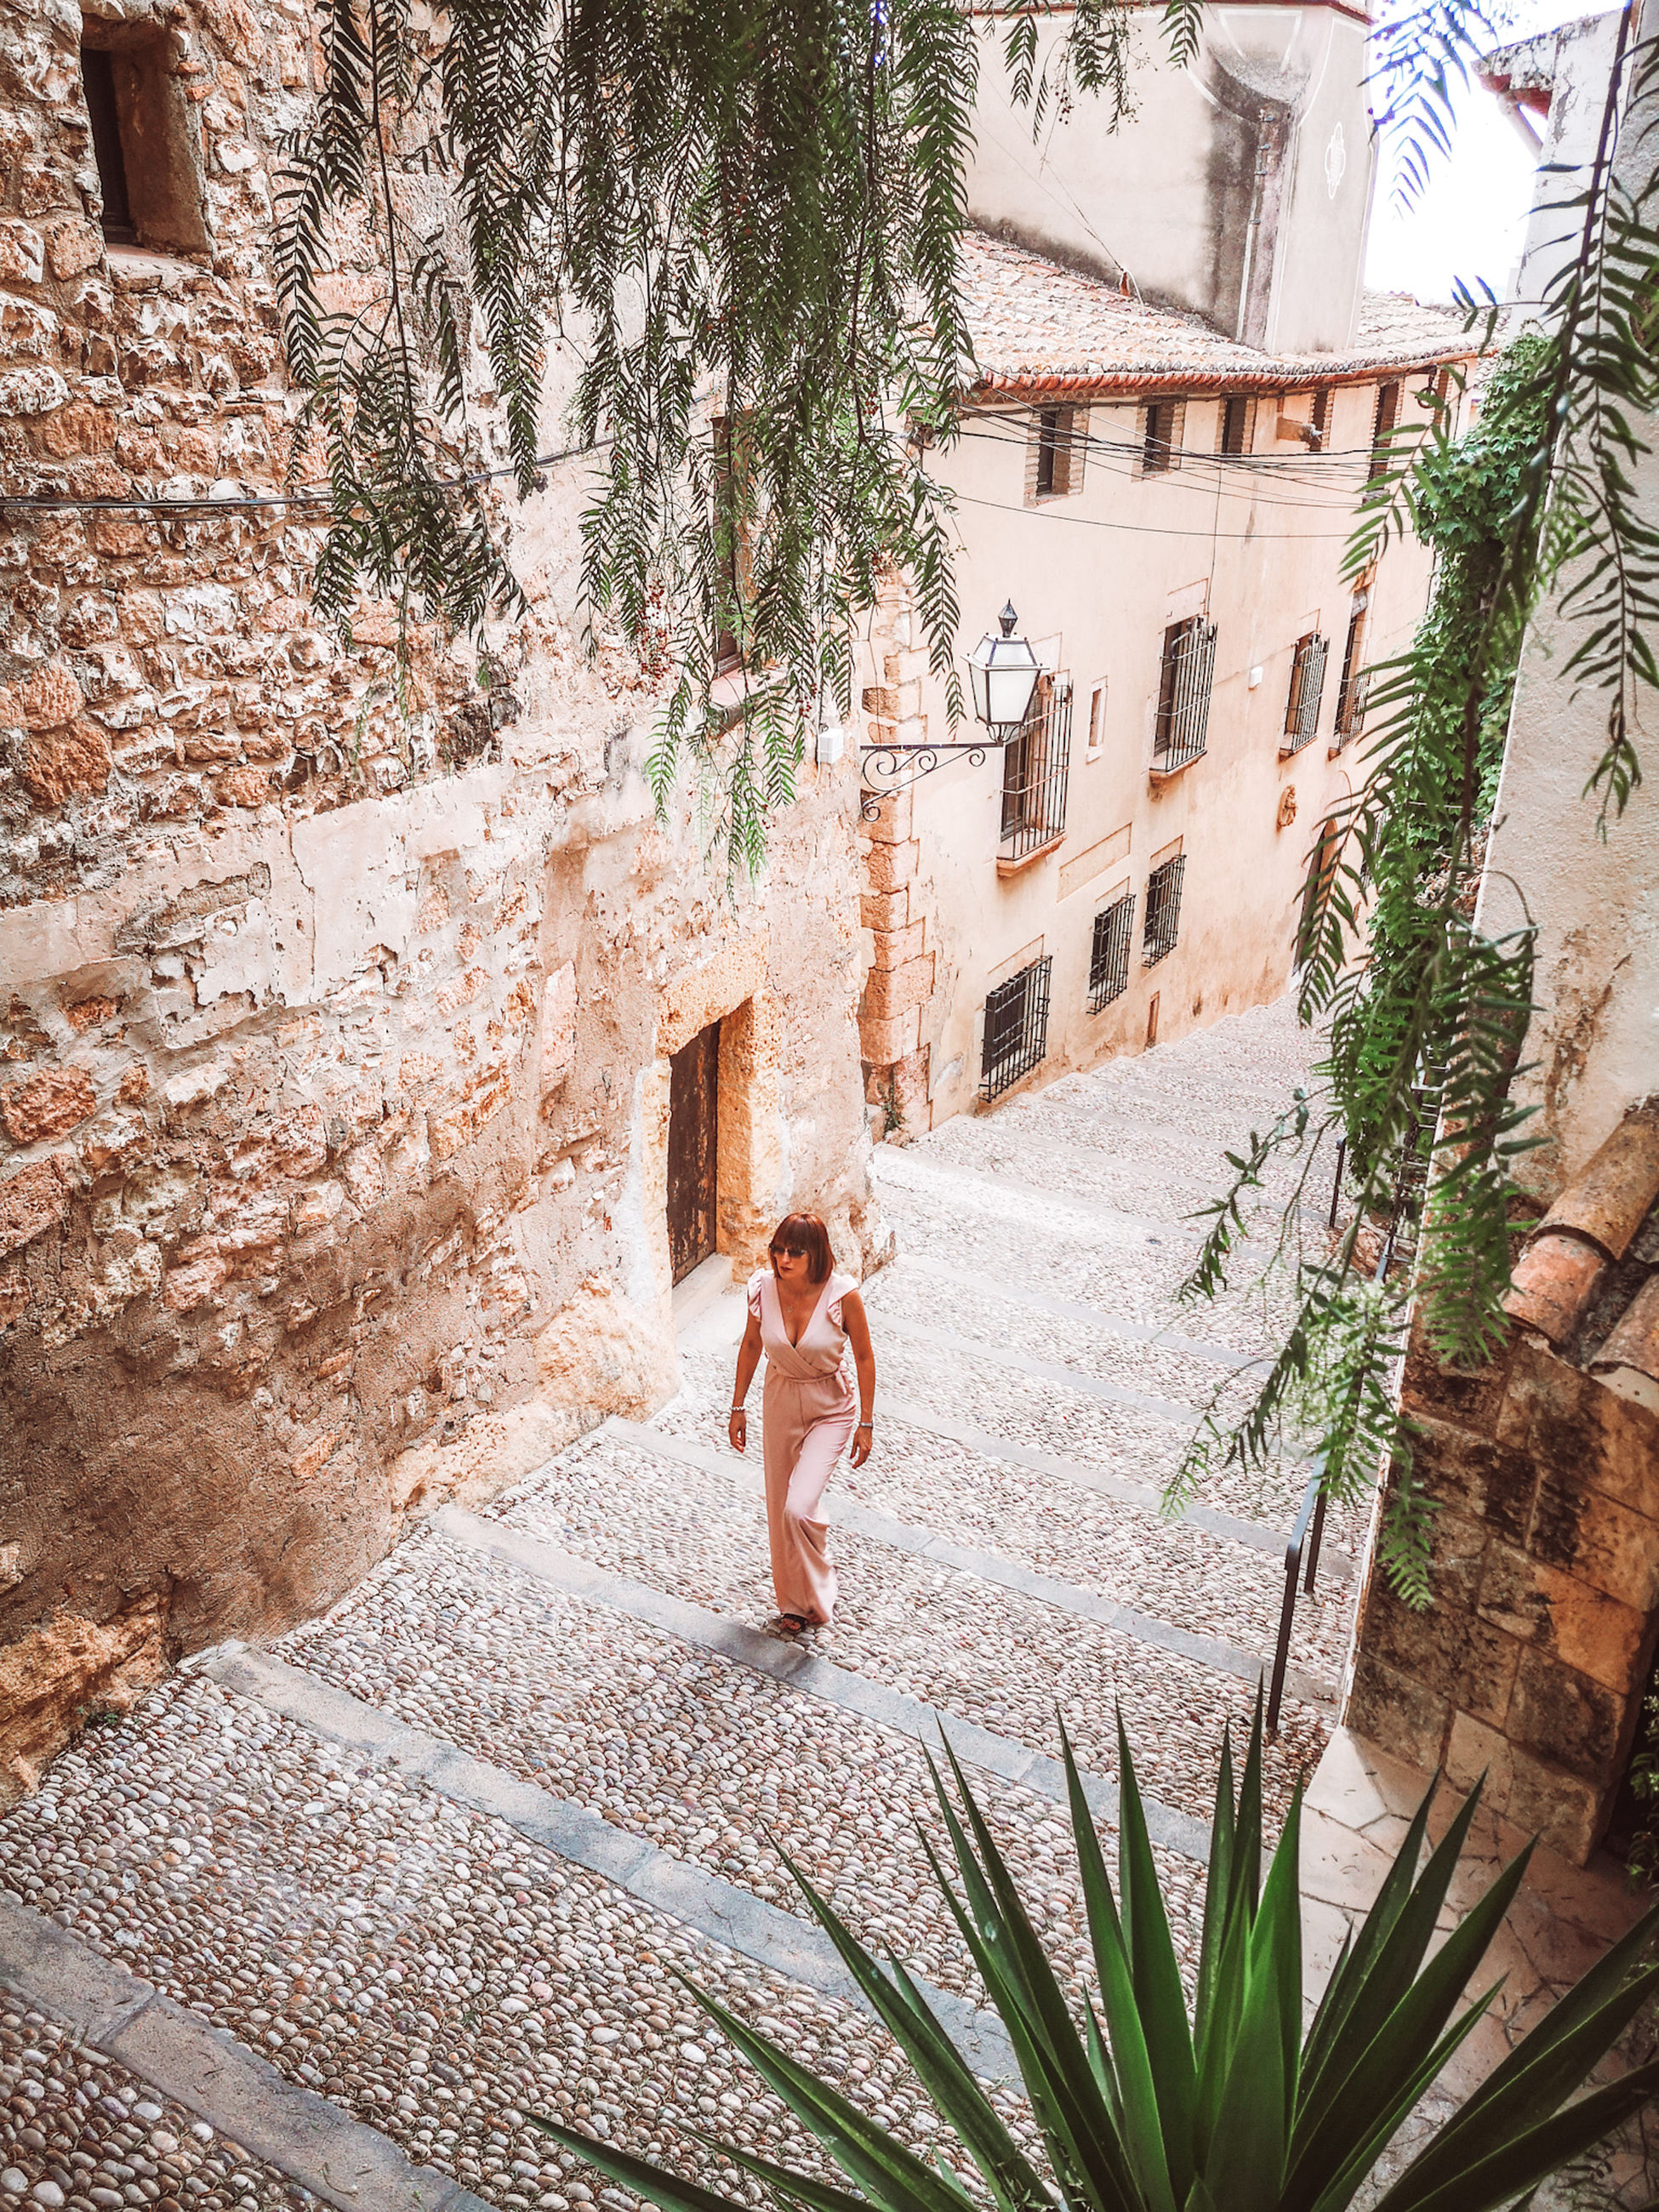 architecture, built structure, building exterior, nature, plant, full length, adult, one person, women, house, day, lifestyles, leisure activity, building, tree, wall, flower, young adult, outdoors, high angle view, sunlight, men, holiday, vacation, courtyard, female, water, trip, standing